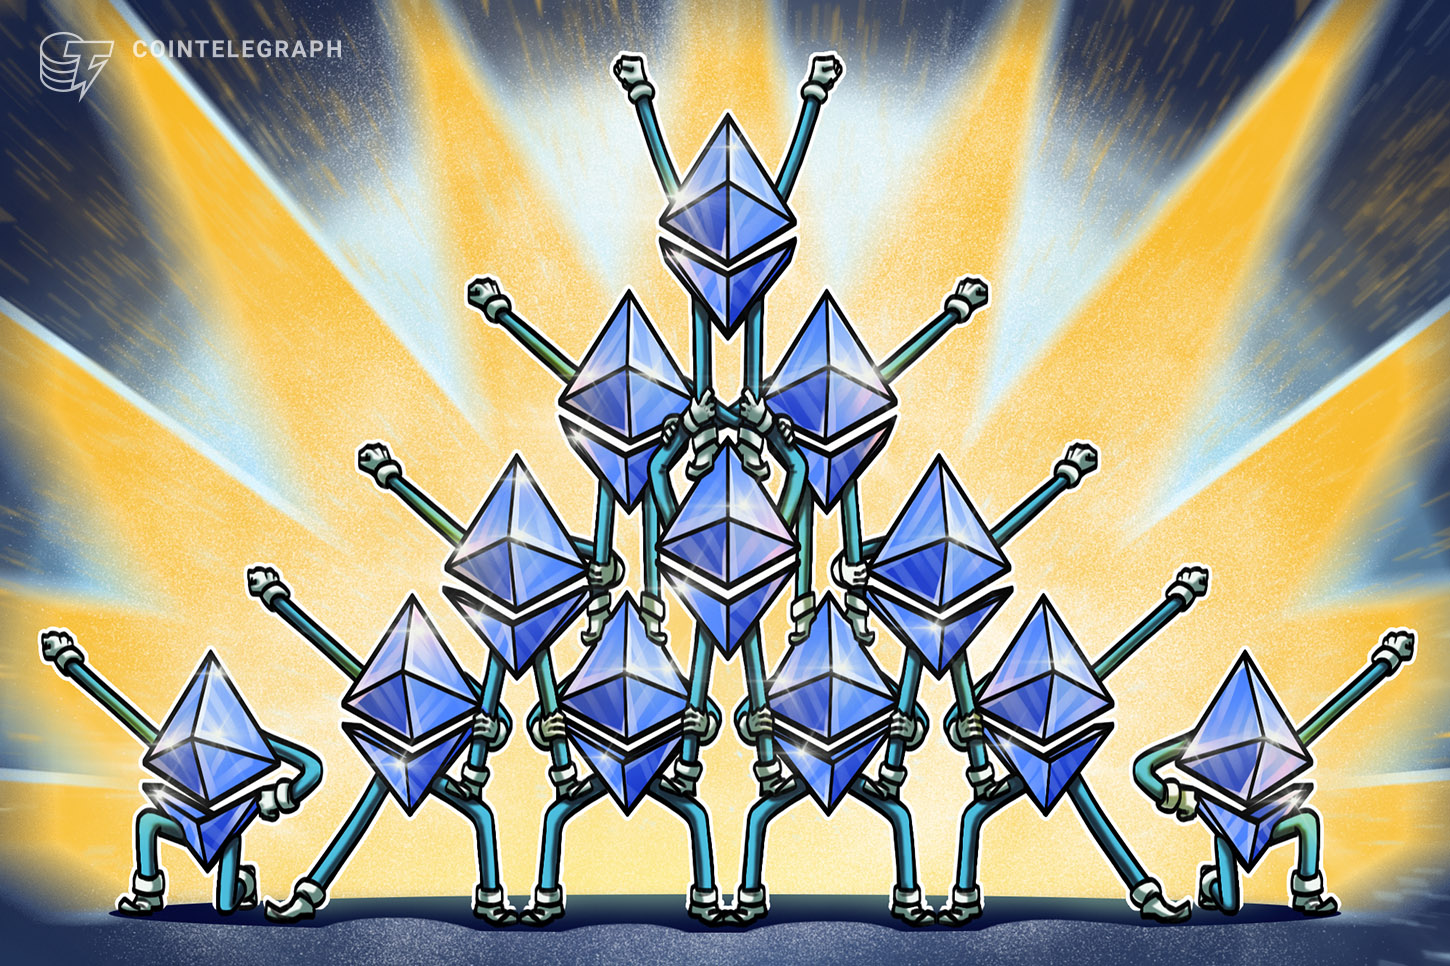 Ethereum fractal from 2017 that resulted in 7,000% gains for ETH appears again in 2021